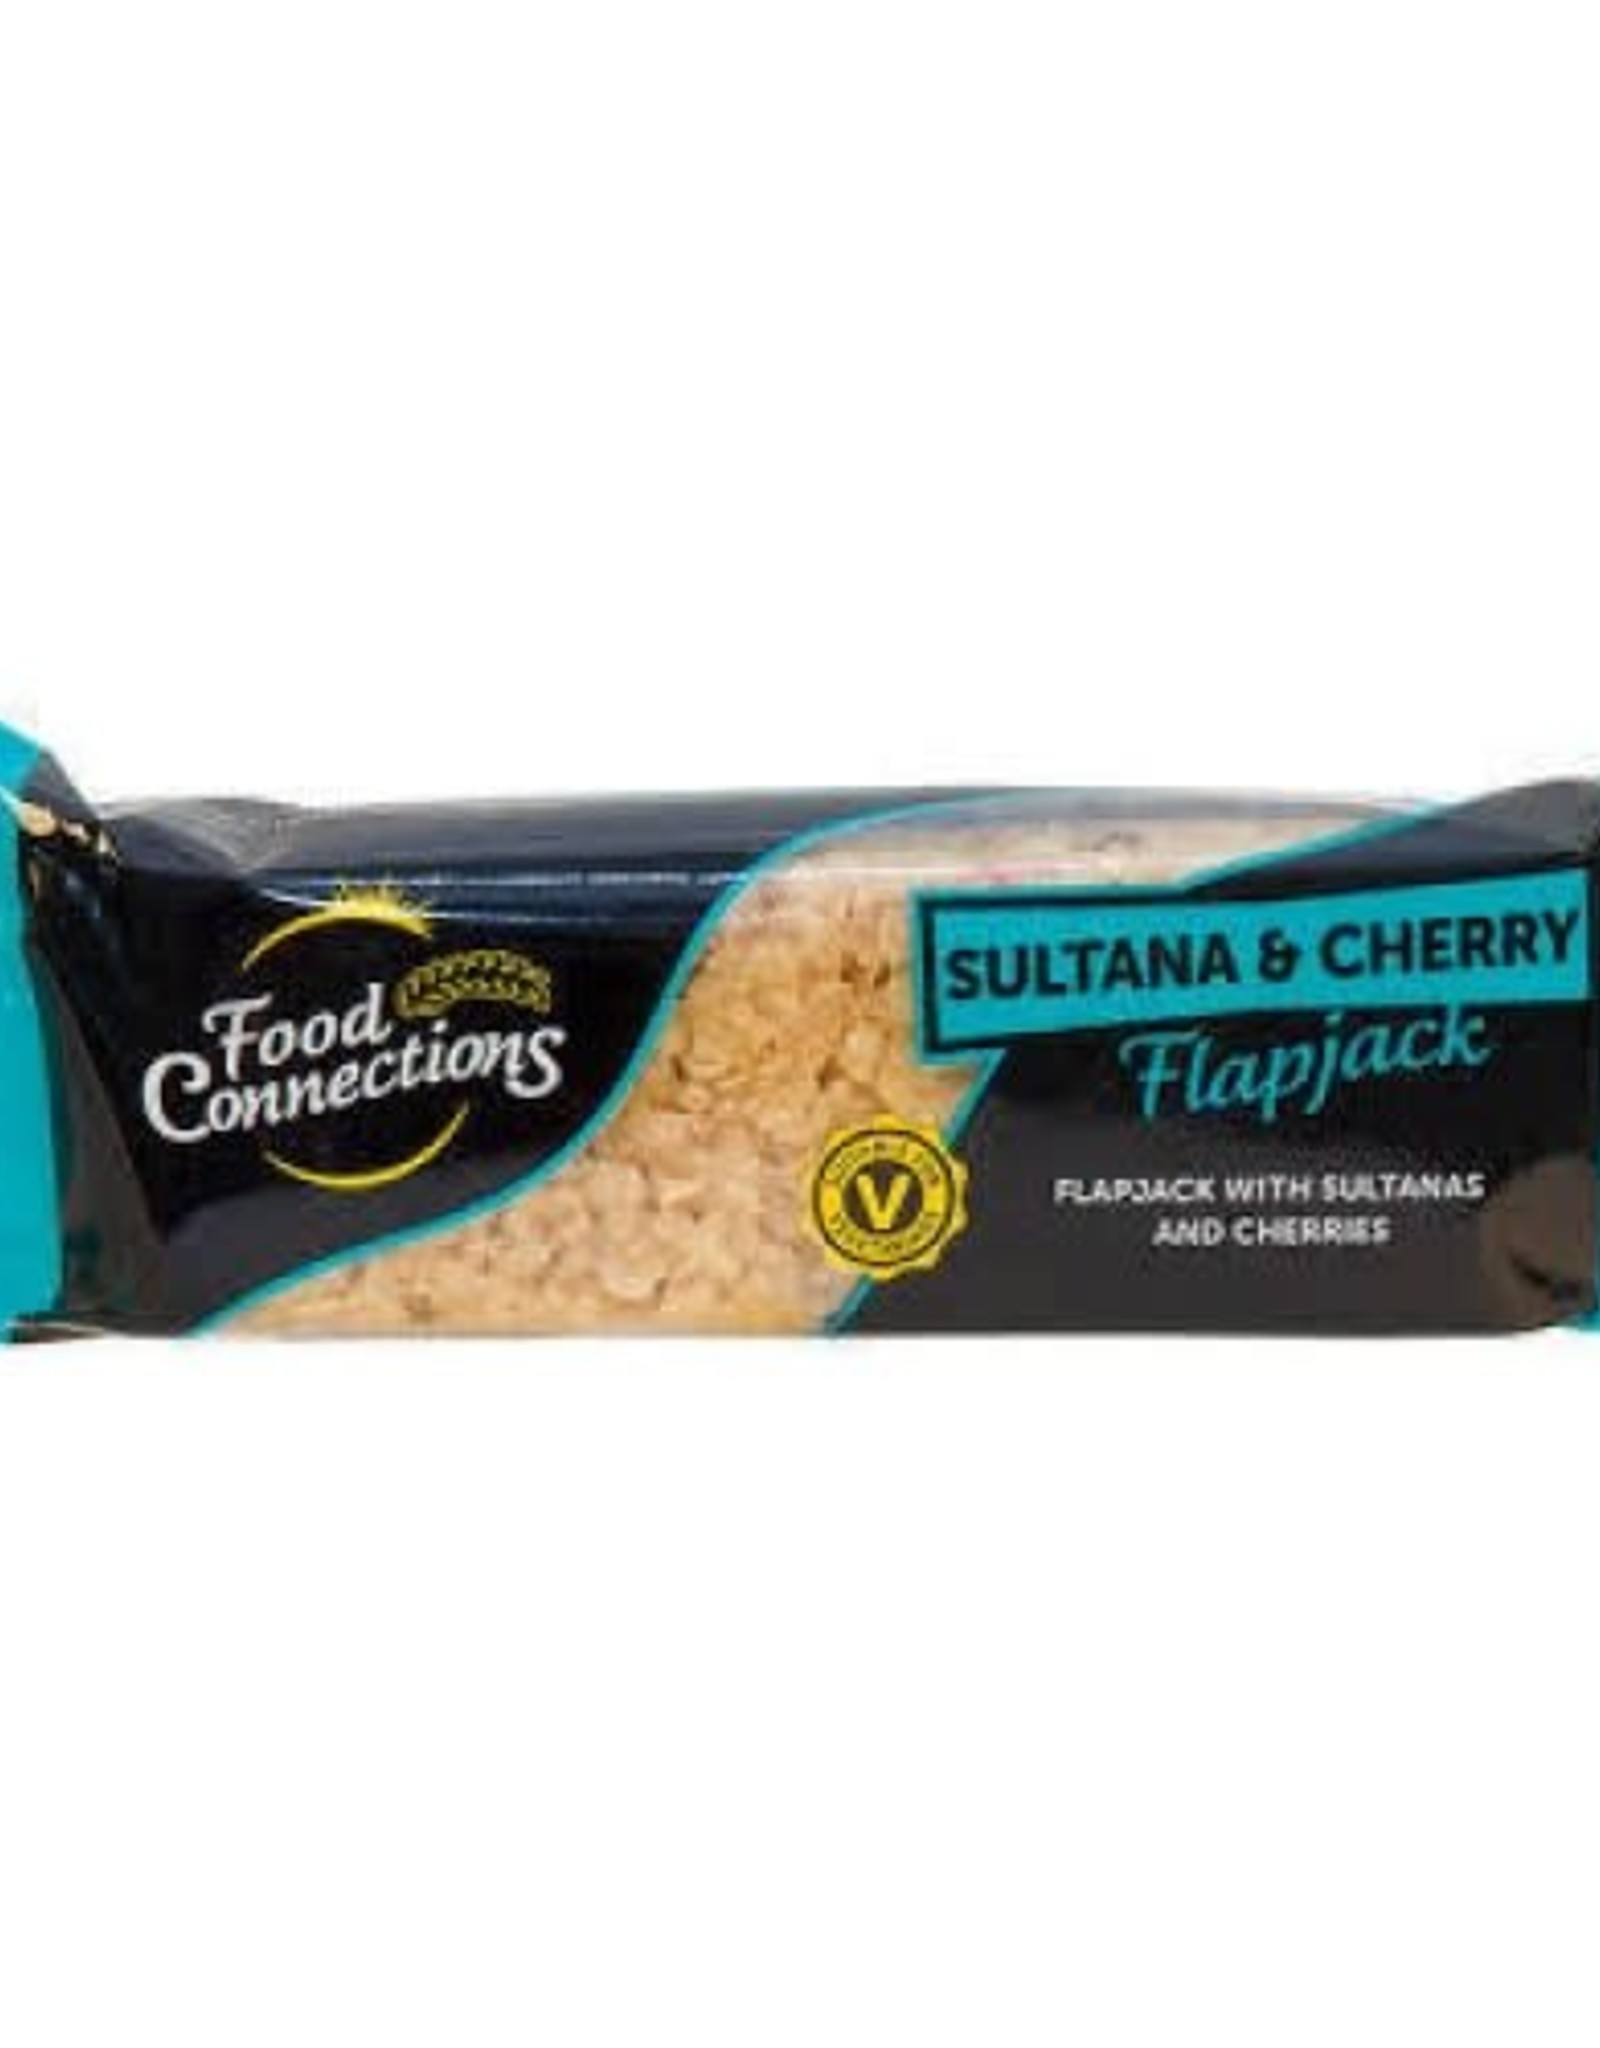 Food Connections Sultana & Cherry Flapjack